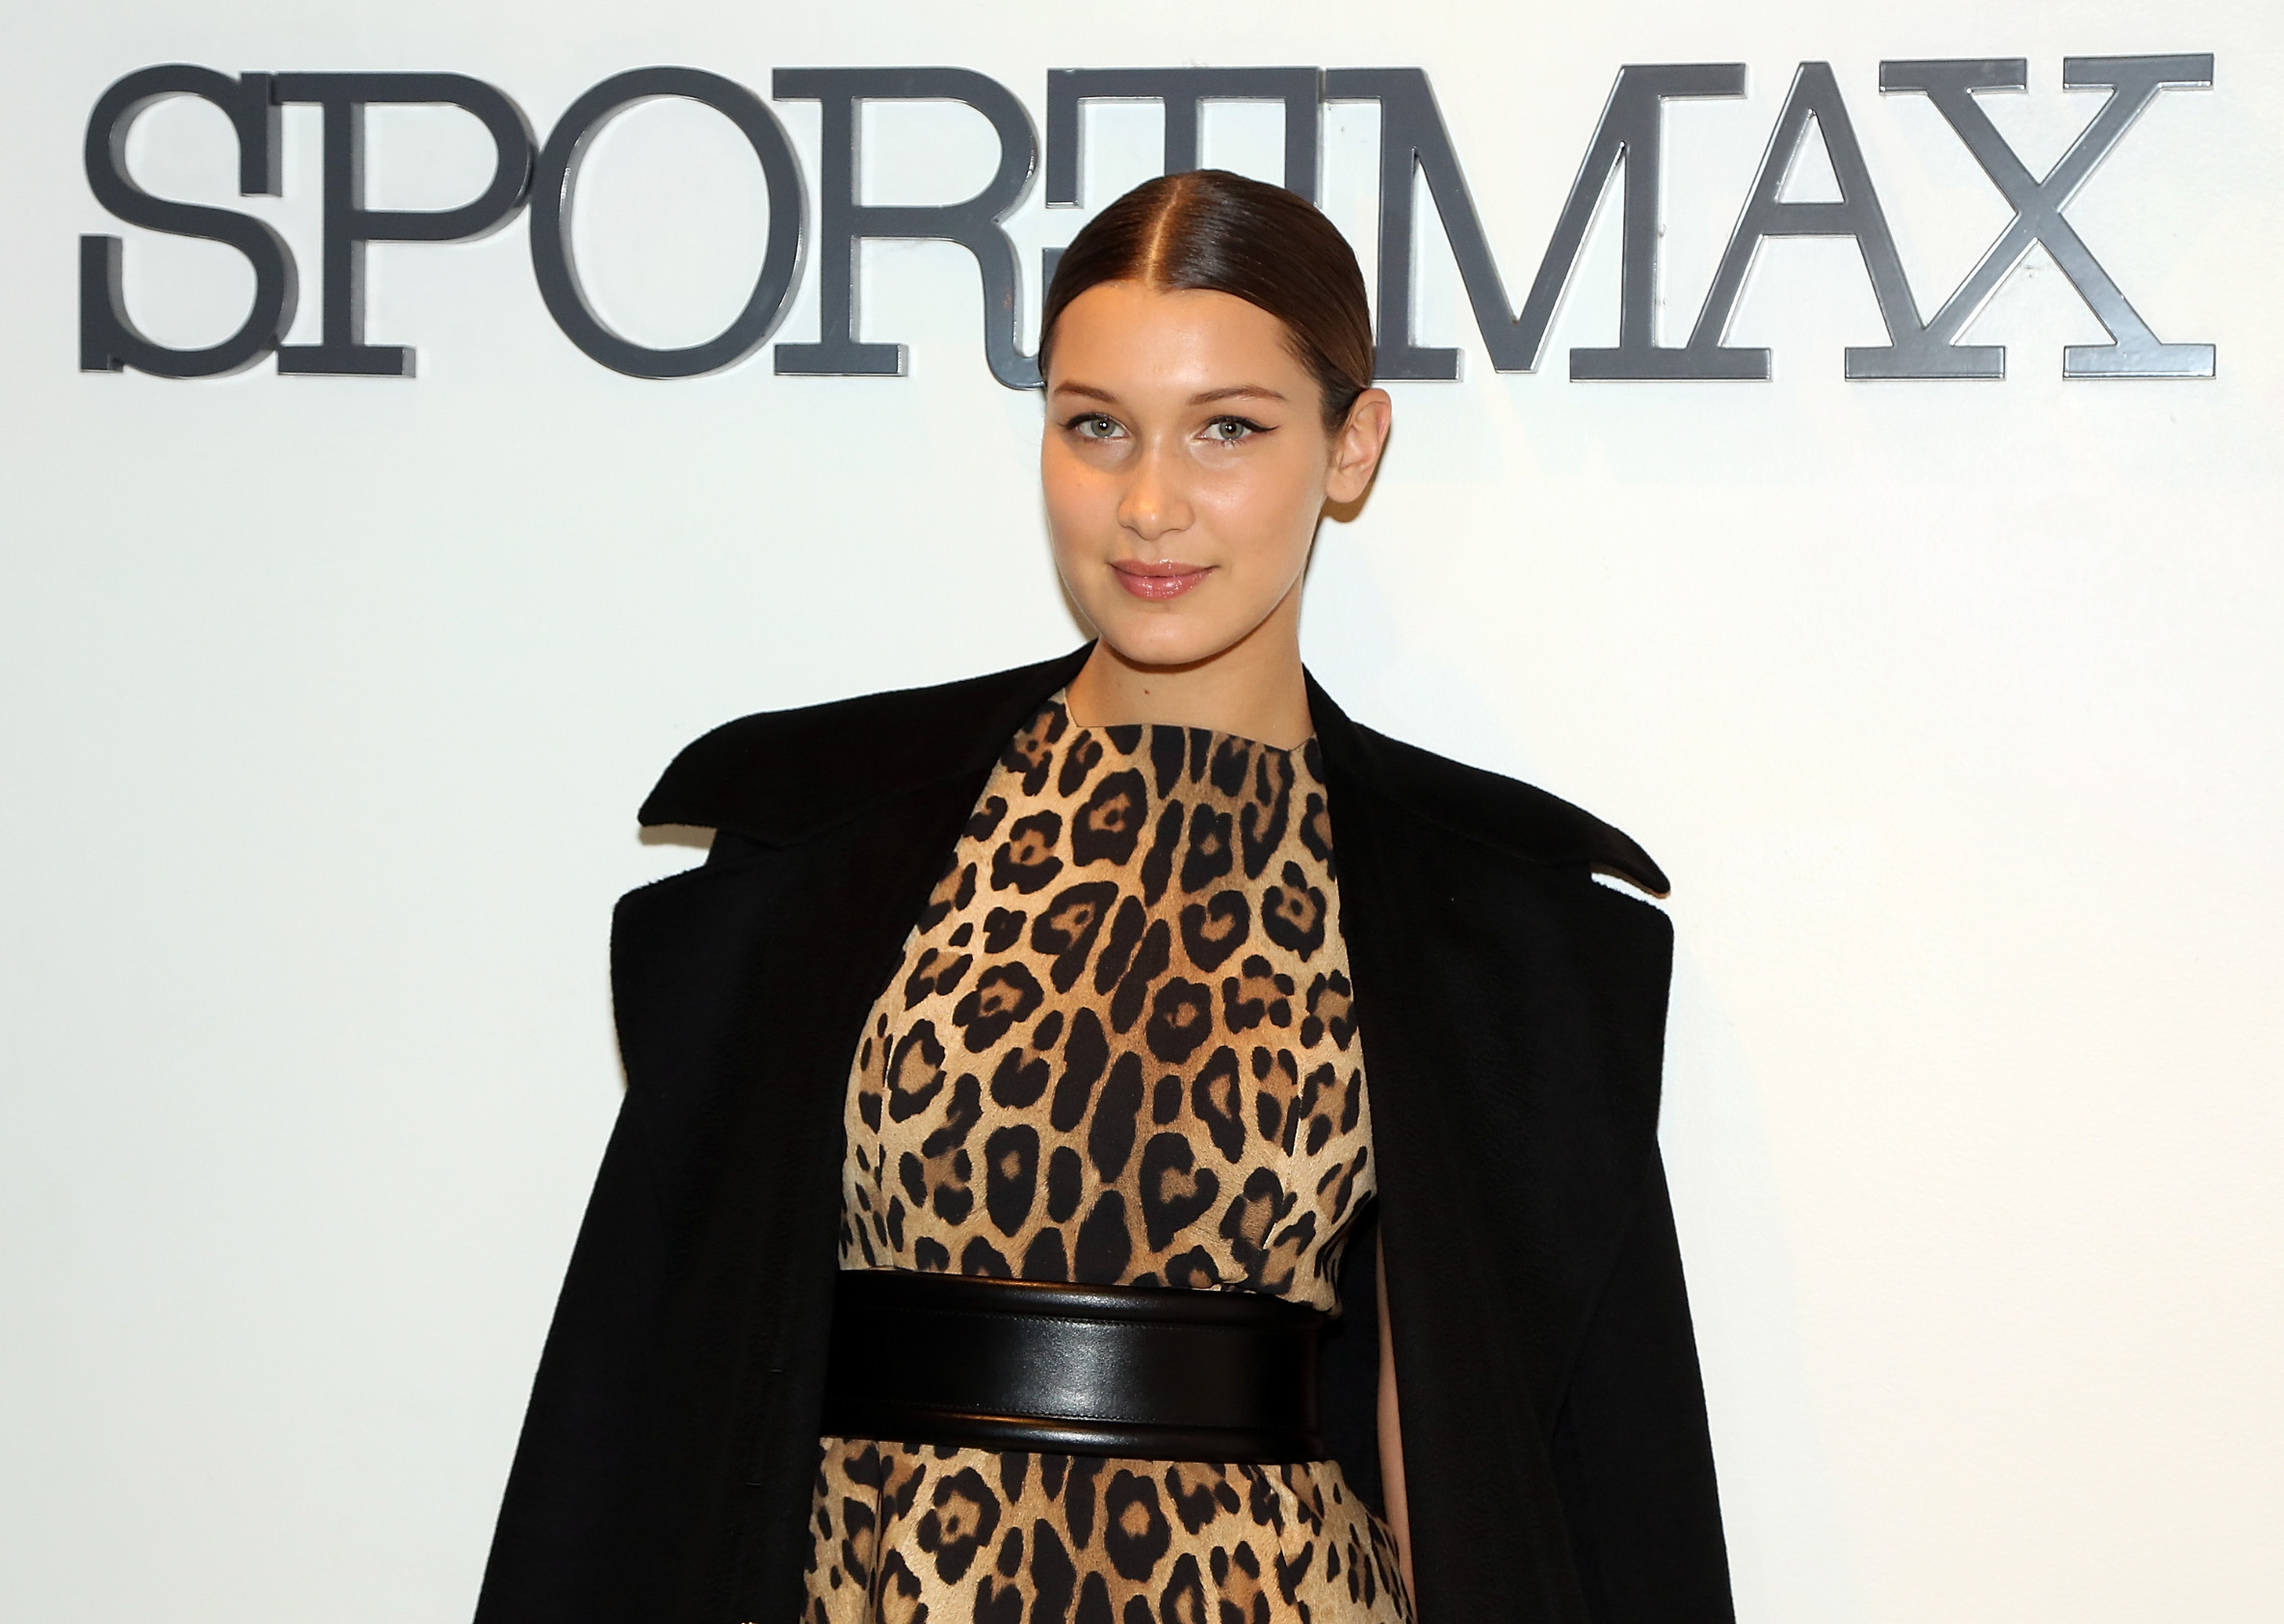 NEW YORK, NY - OCTOBER 28:  Model Bella Hadid attends Sportmax and Teen Vogue Celebrate The Fall/Winter 2014 Collection at Sportmax on October 28, 2014 in New York City.  (Photo by Monica Schipper/Getty Images for Teen Vogue)